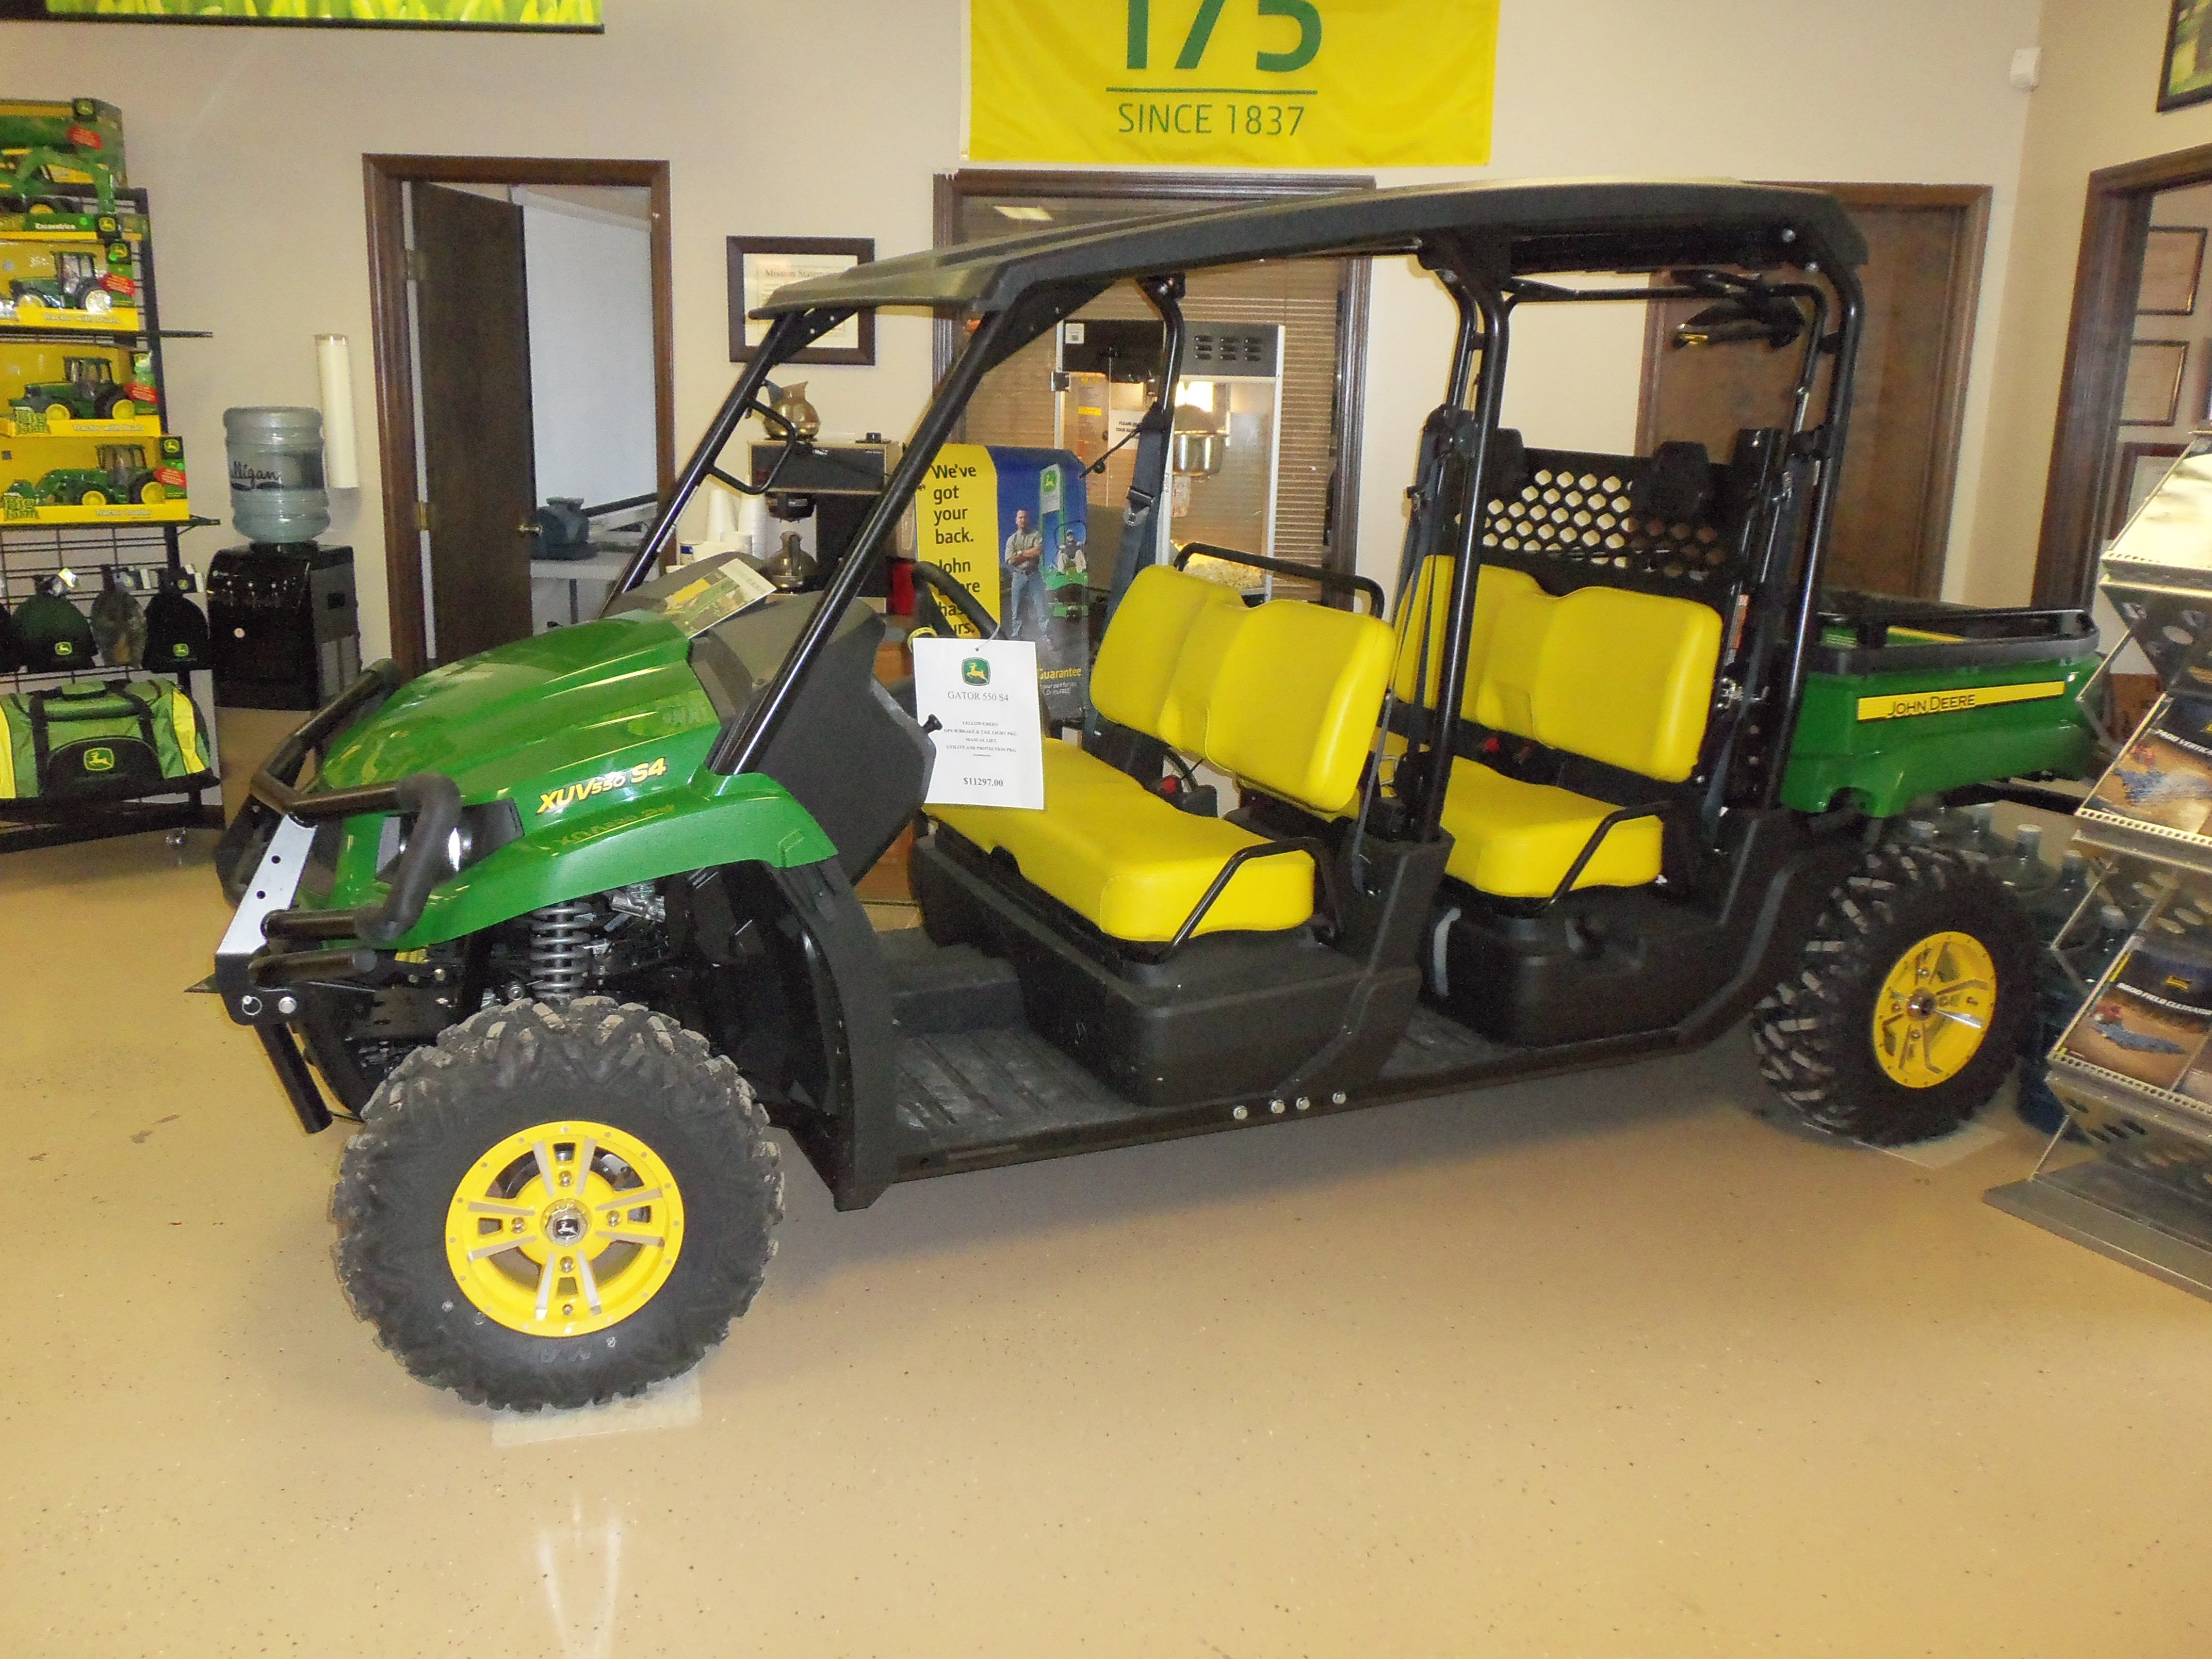 John Deere XUV 550 S4 Gator 4 seater The classic John Deere colors